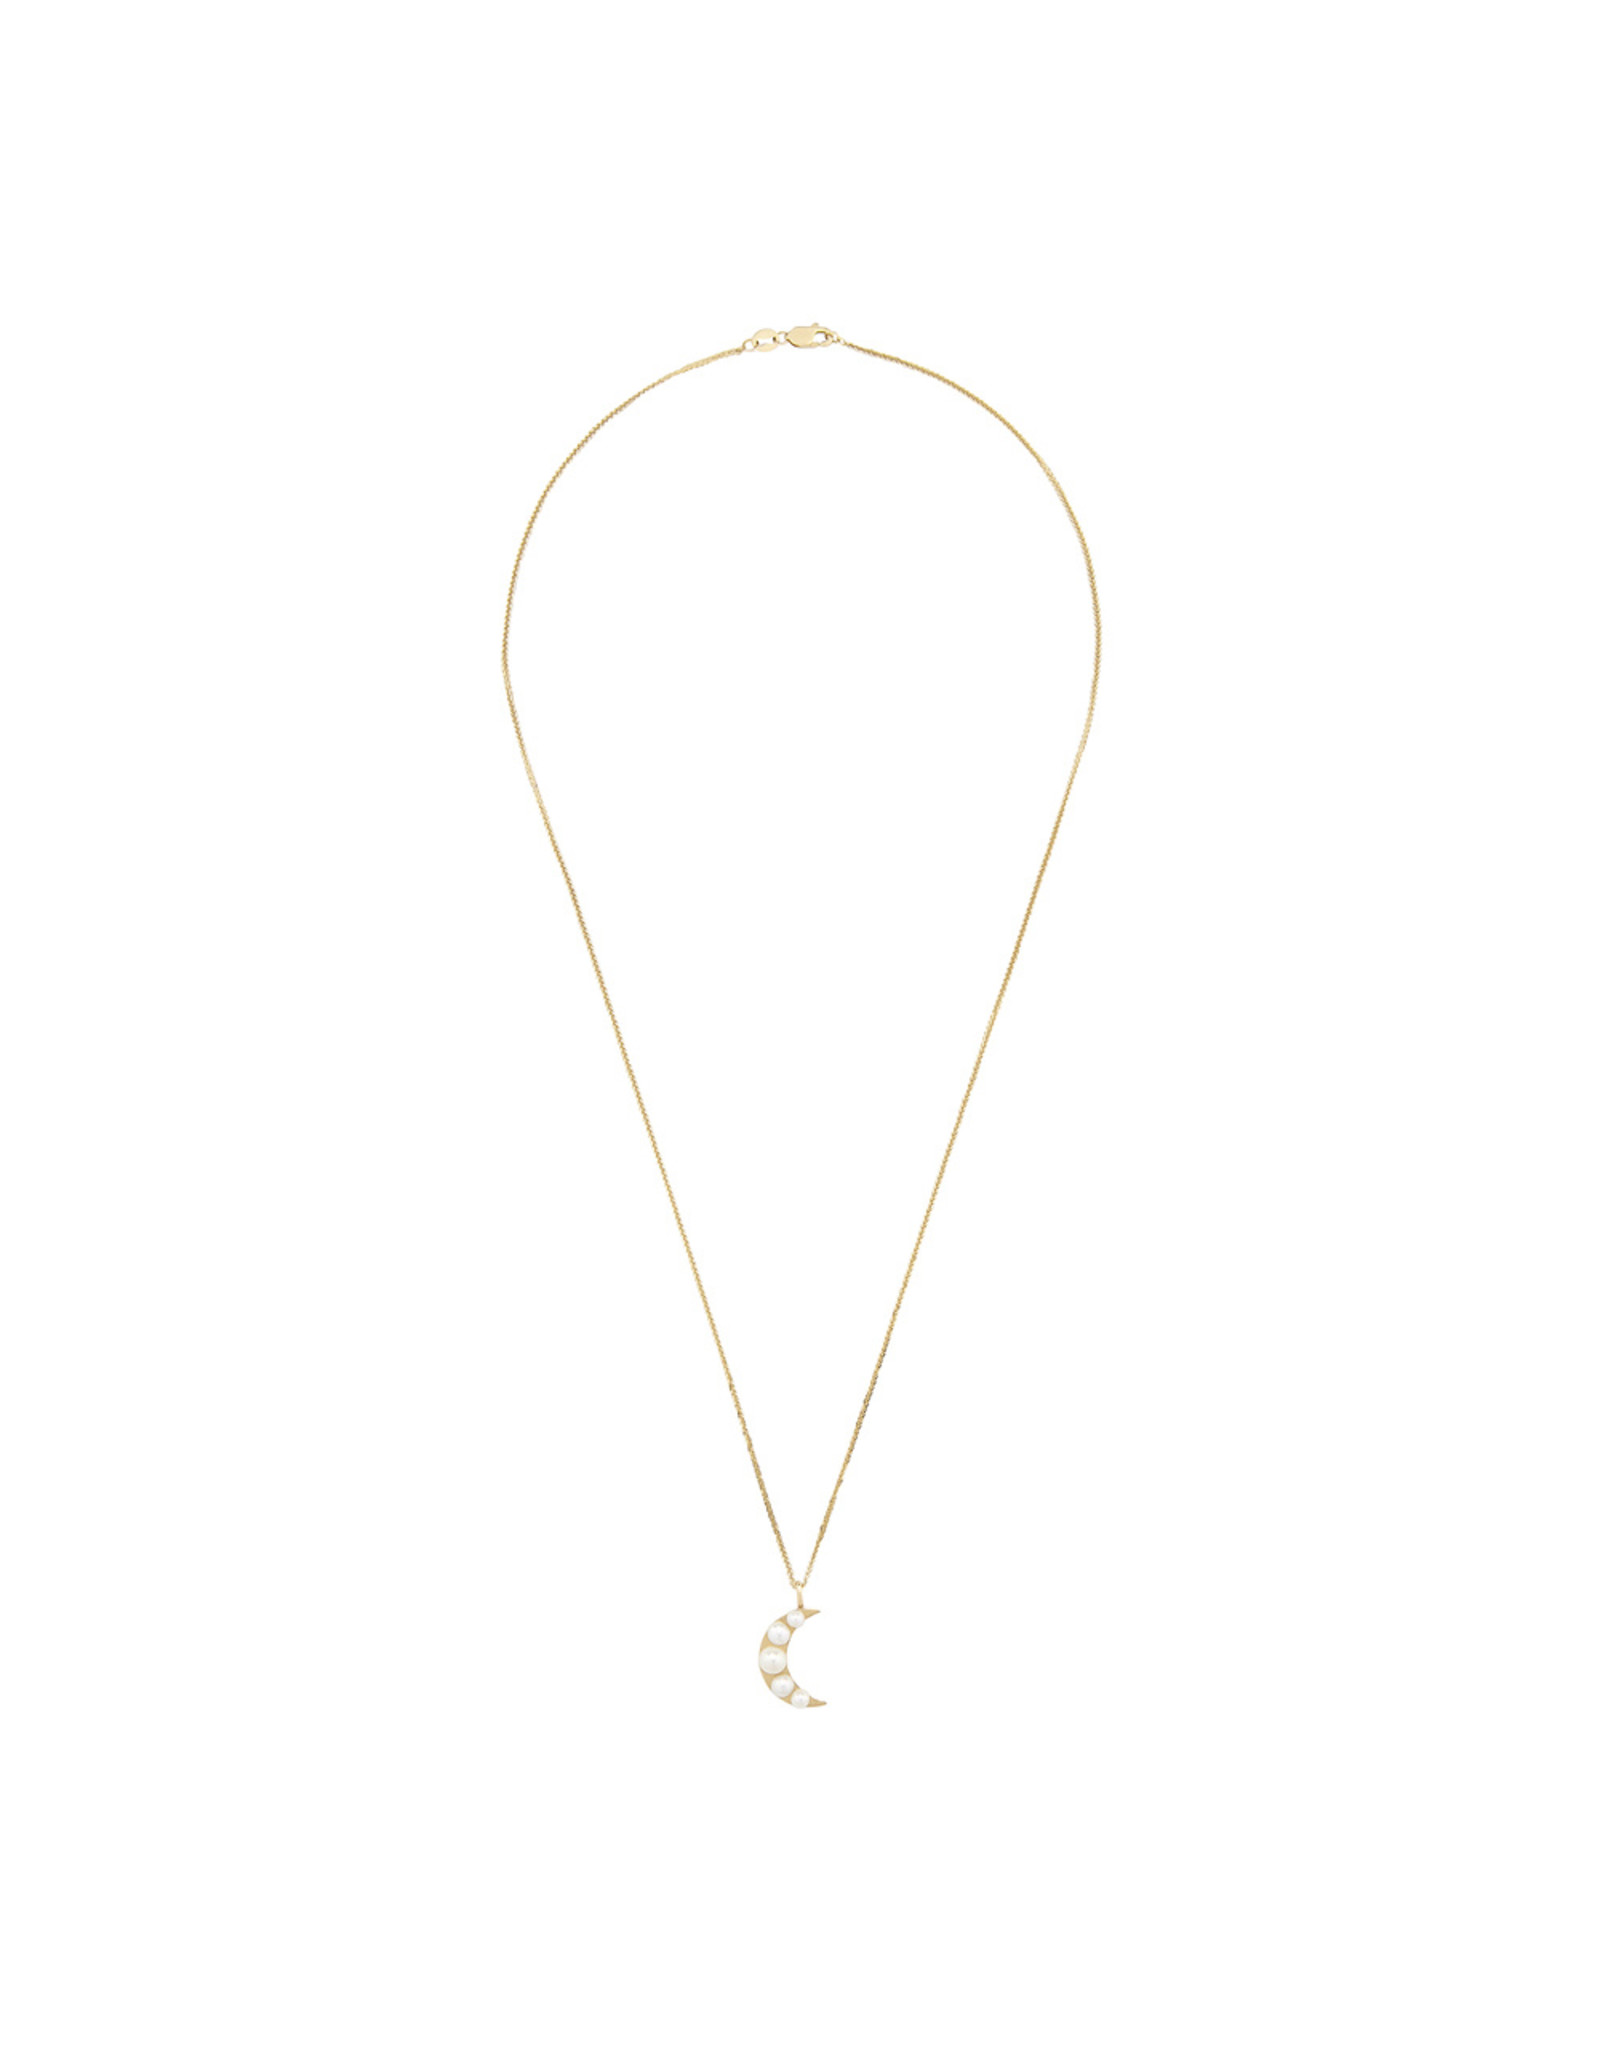 Ariel Gordon Ariel Gordon Lido Moon Pendant Necklace (Color: Yellow Gold/Pearl)